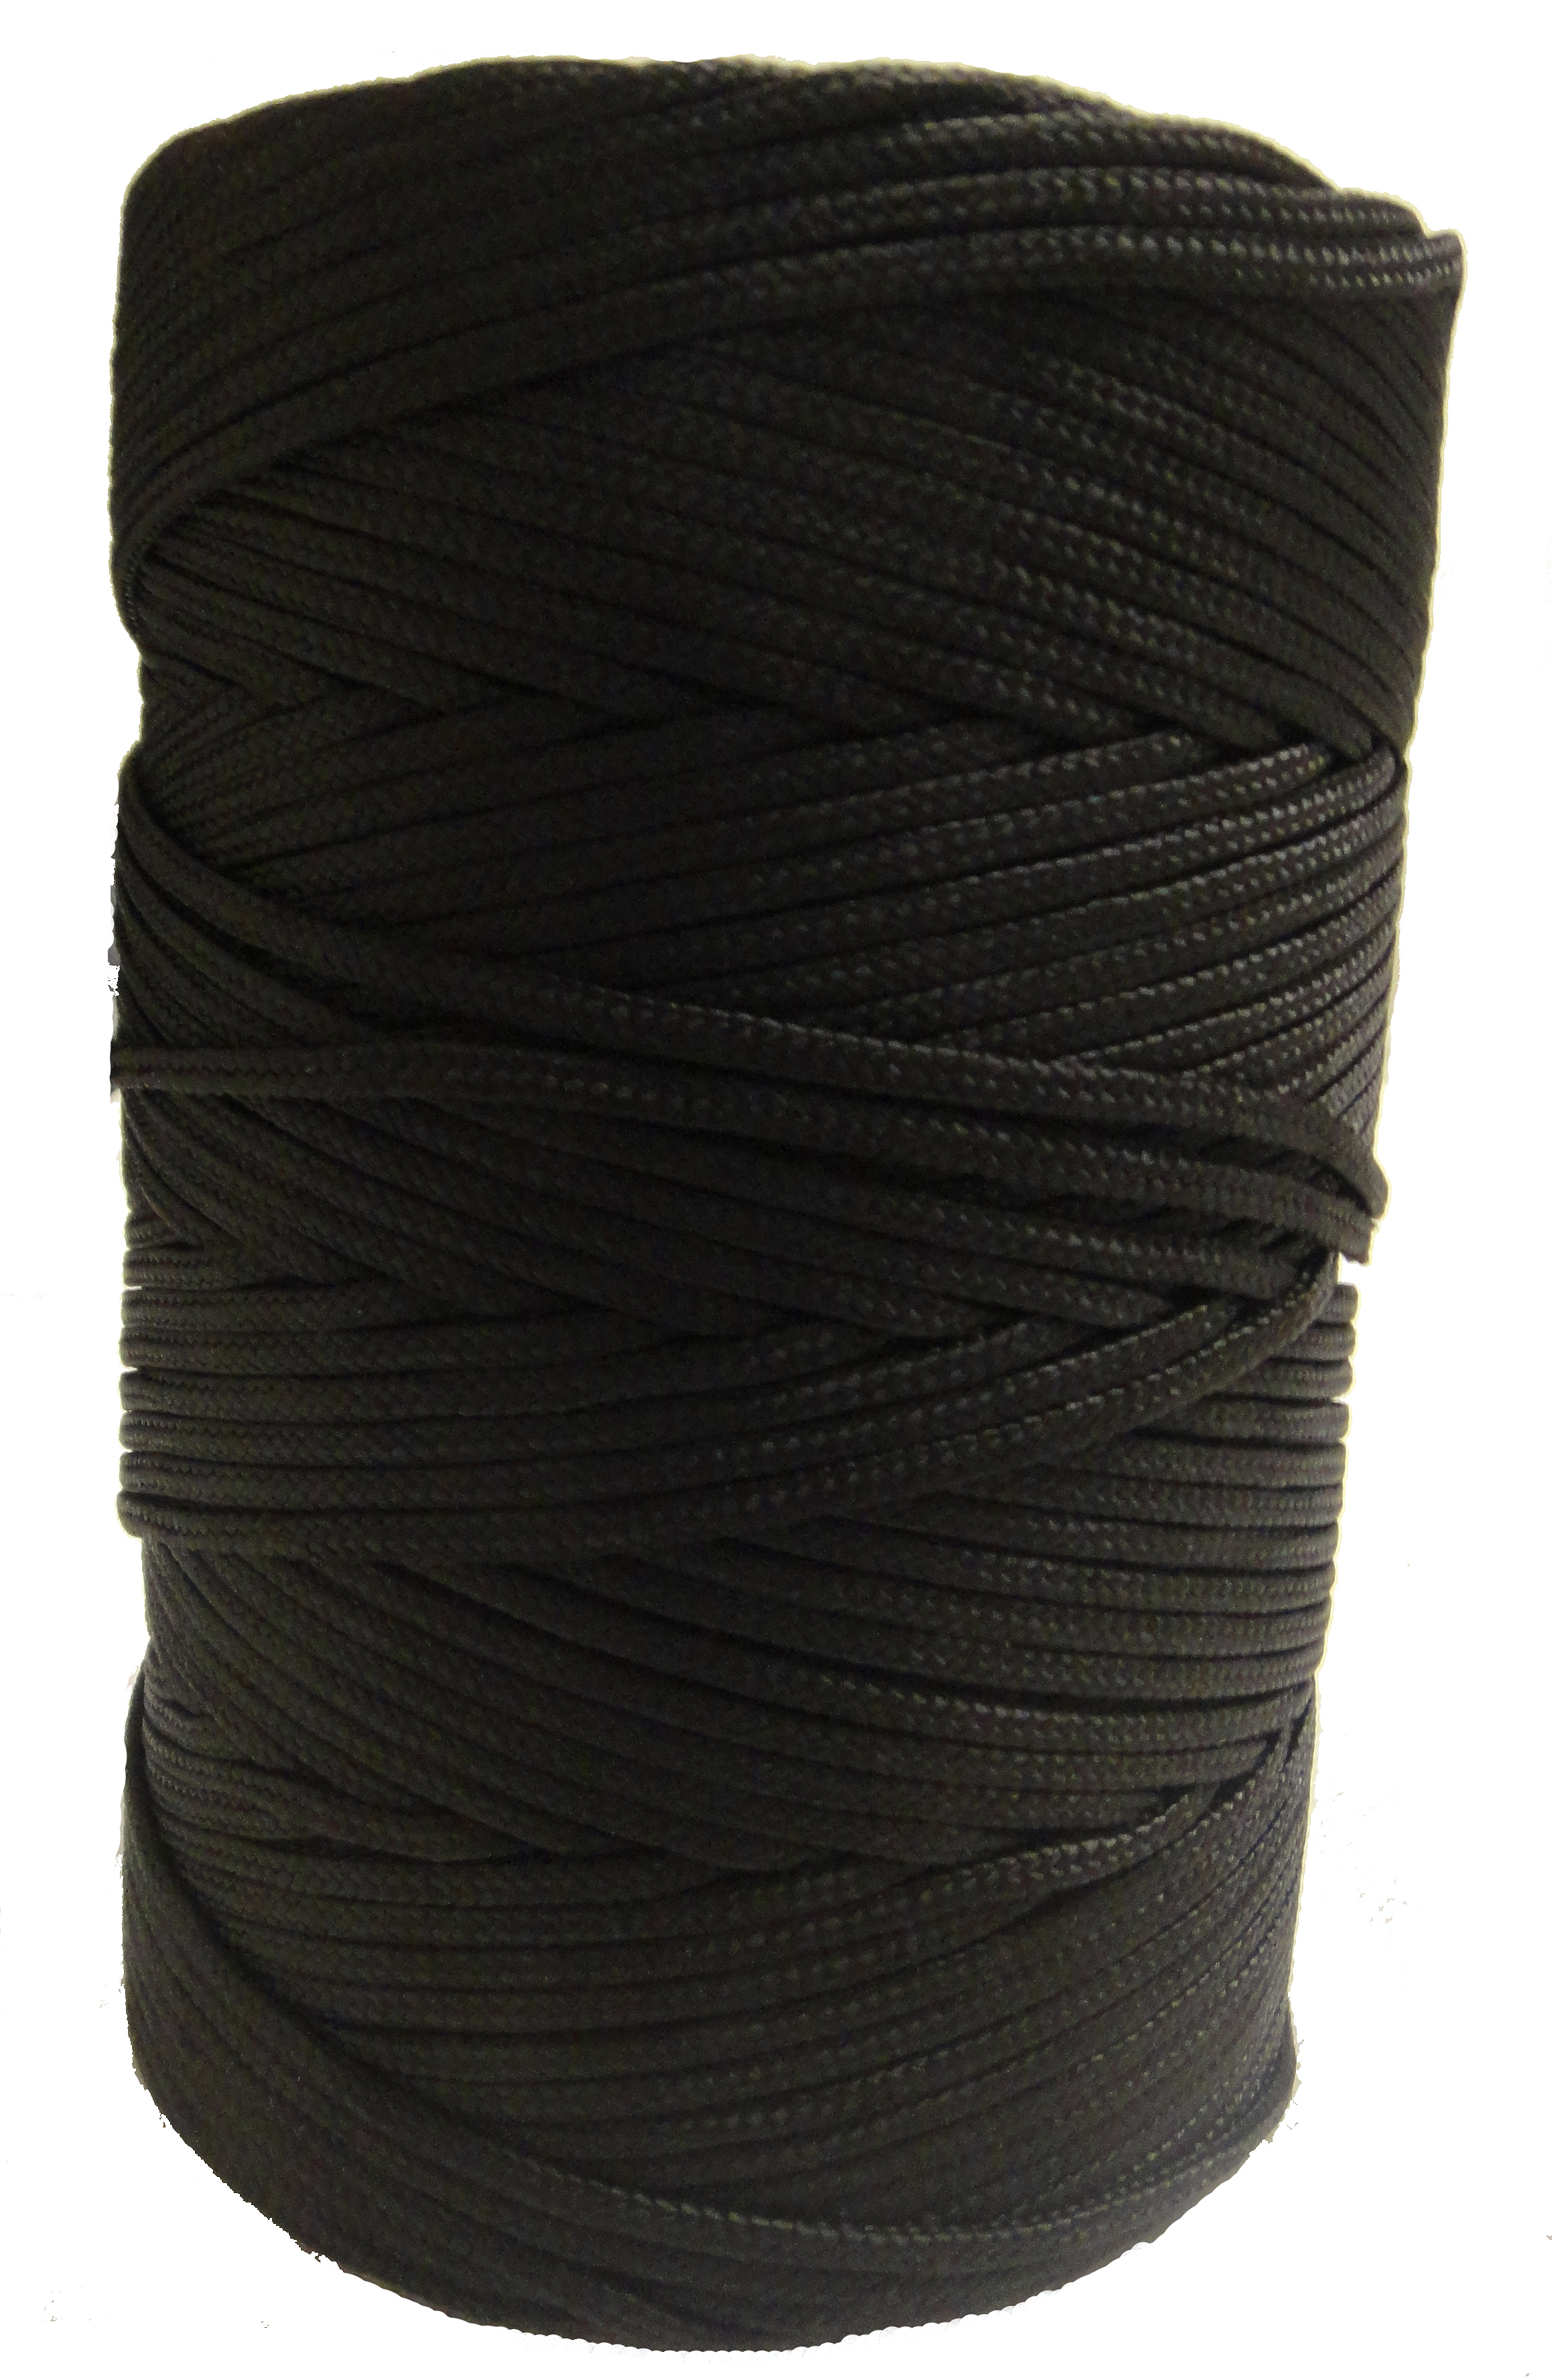 Timko Ltd 2mm Black Braided Nylon Cord X 280m Braided Nylon Twine